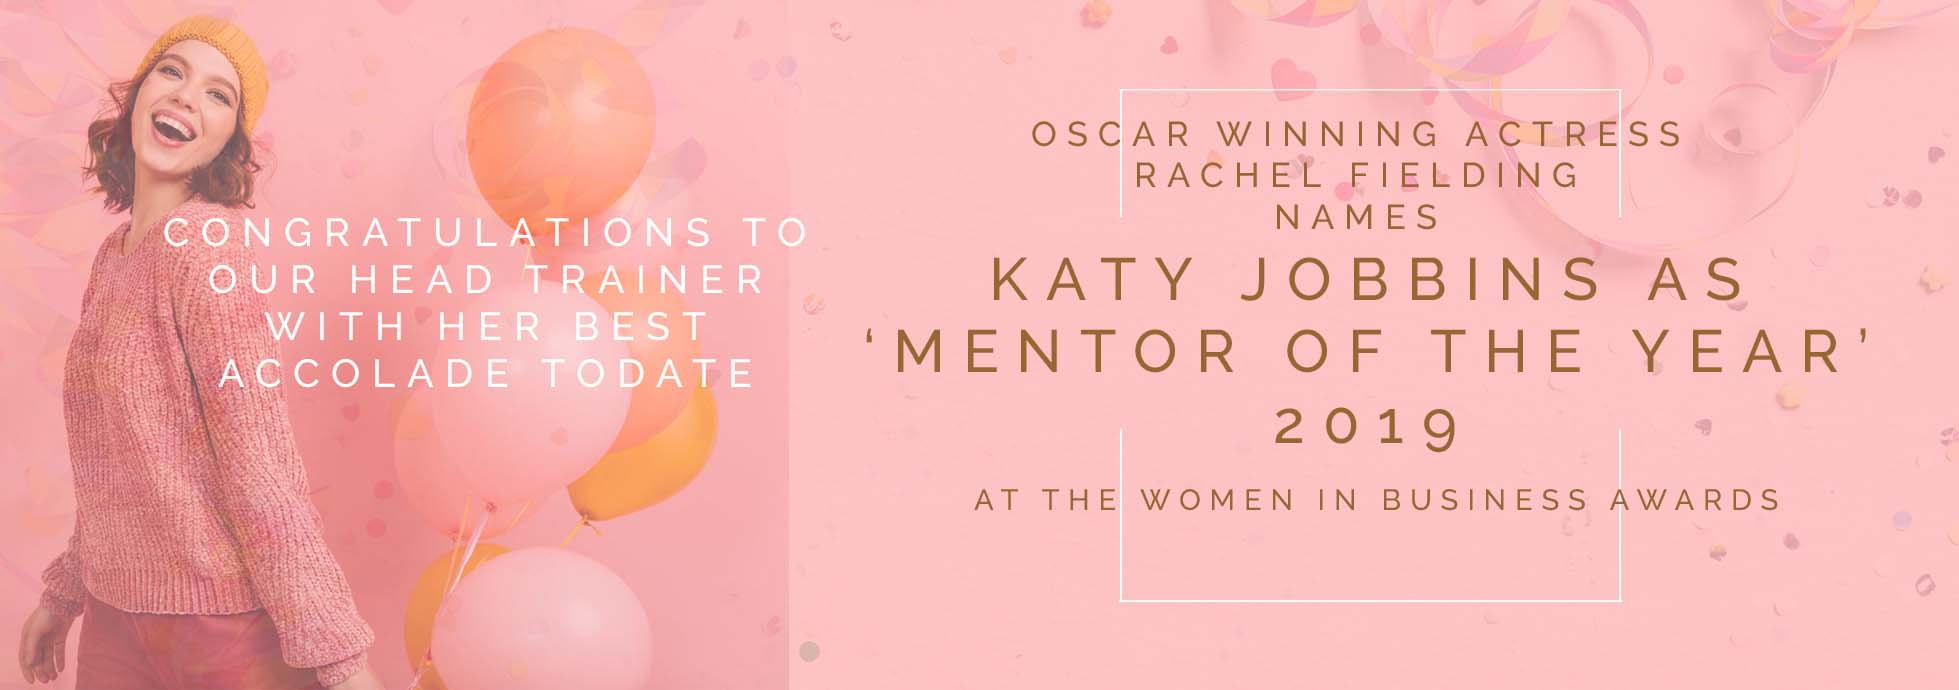 Katy-Jobbins-named-Mentor-of-the-Year2019